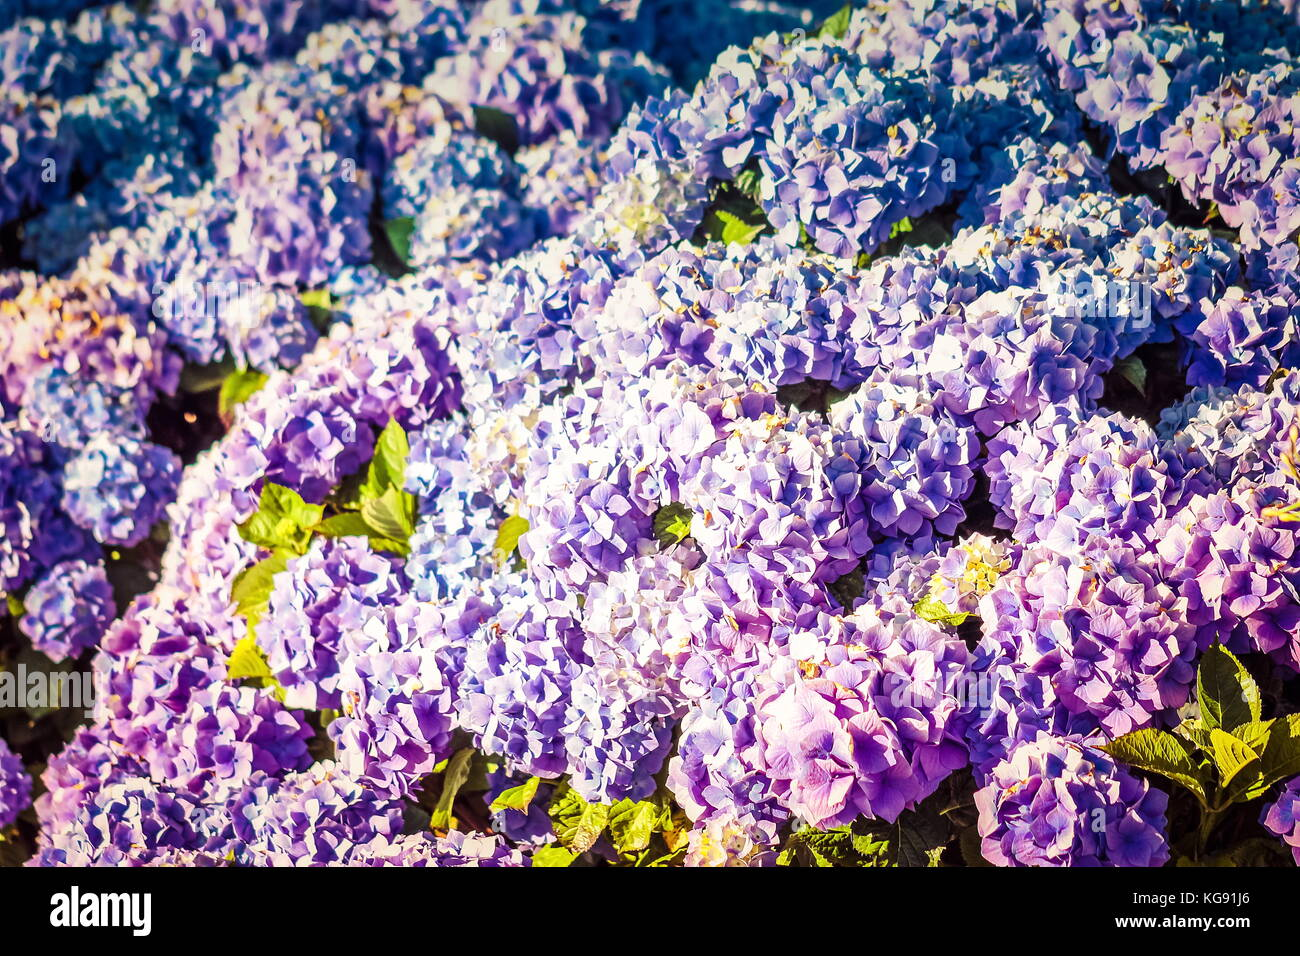 Hydrangea flowers-  plants native to southern and eastern Asia and the Americas. - Stock Image